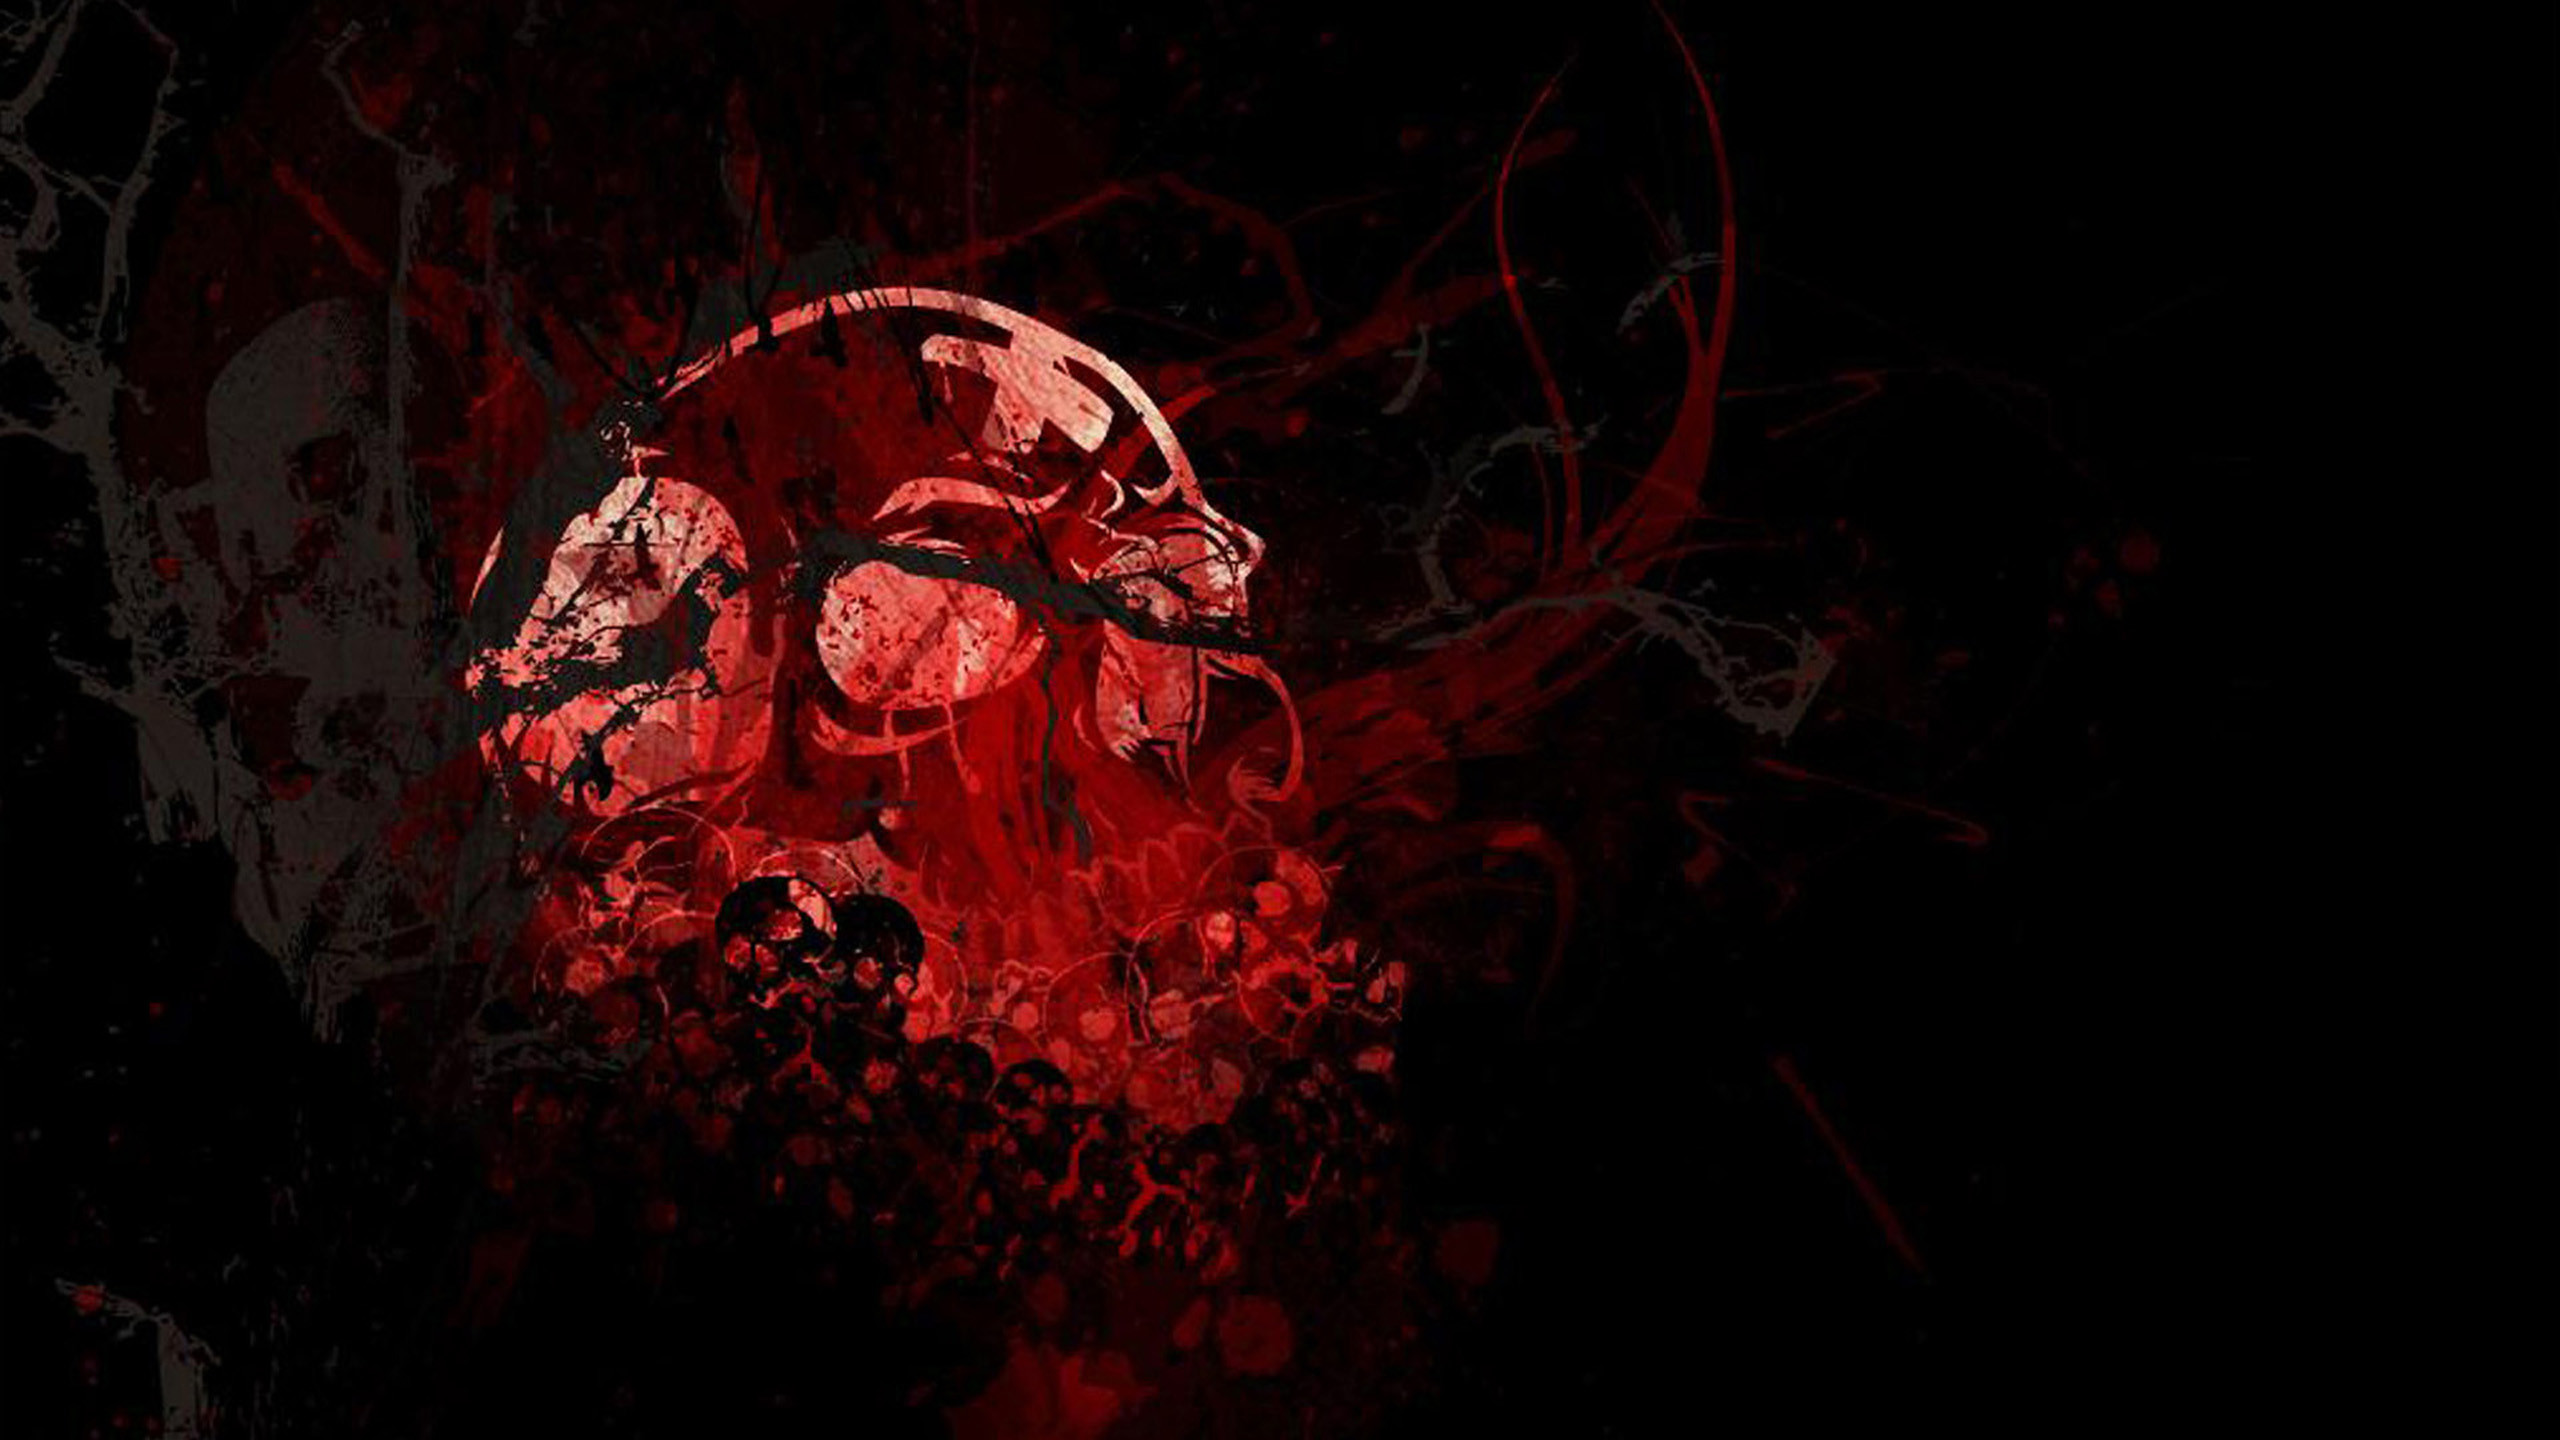 2560x1440 Skull HD Wallpapers Backgrounds Wallpaper 2560×1440 Red And Black Skull  Wallpapers (44 Wallpapers